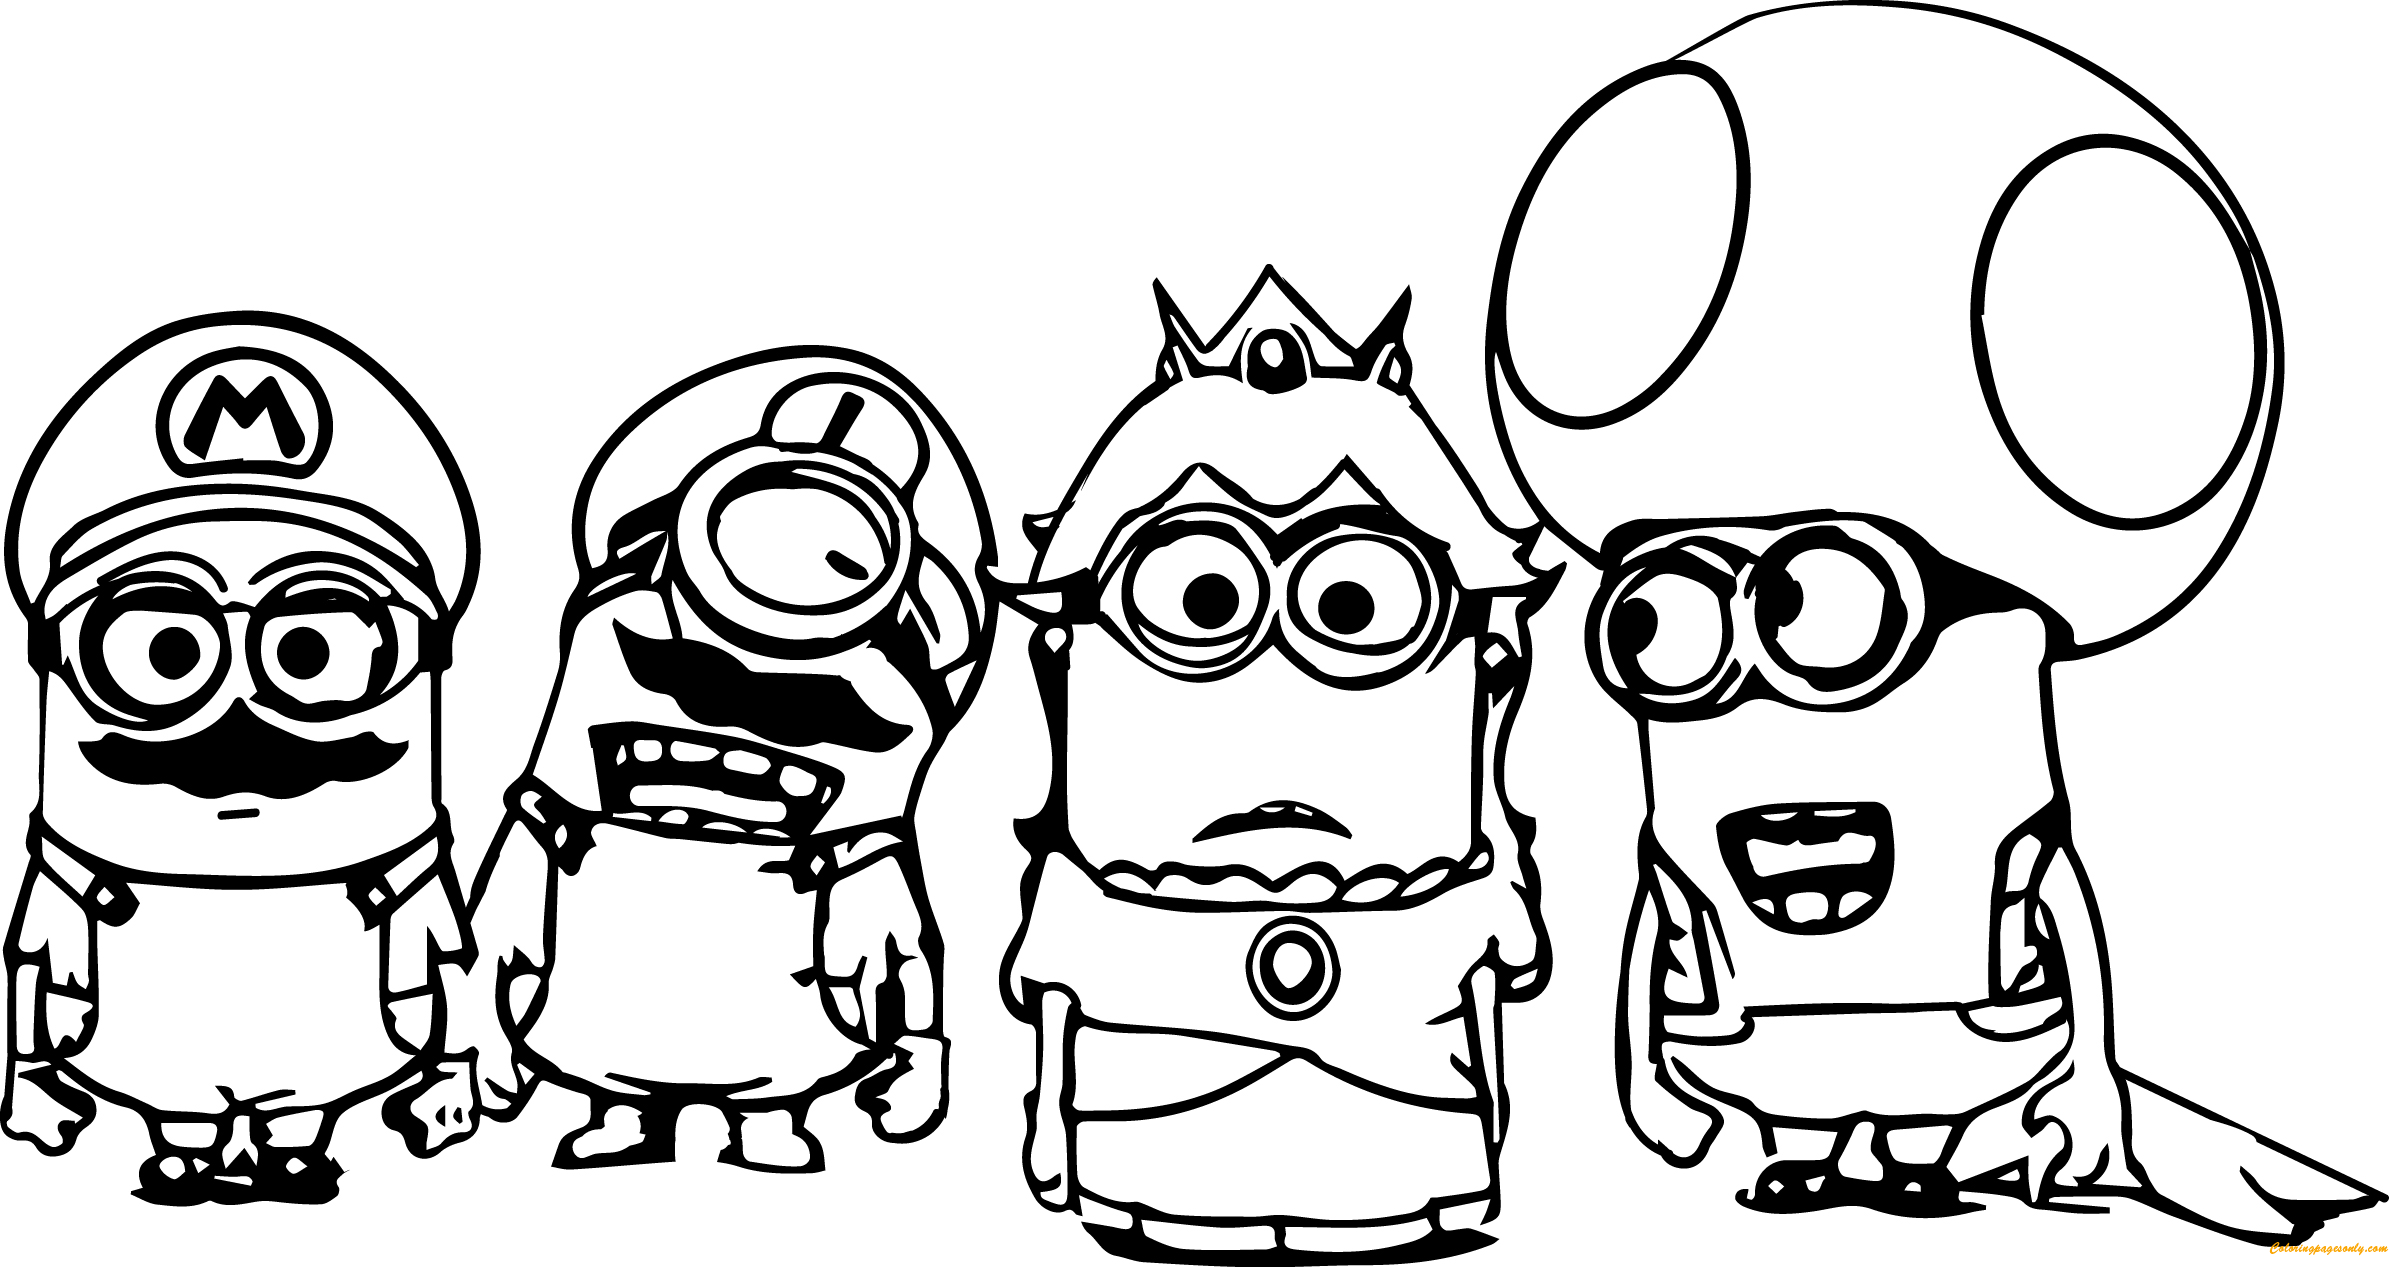 The Minions Coloring Page